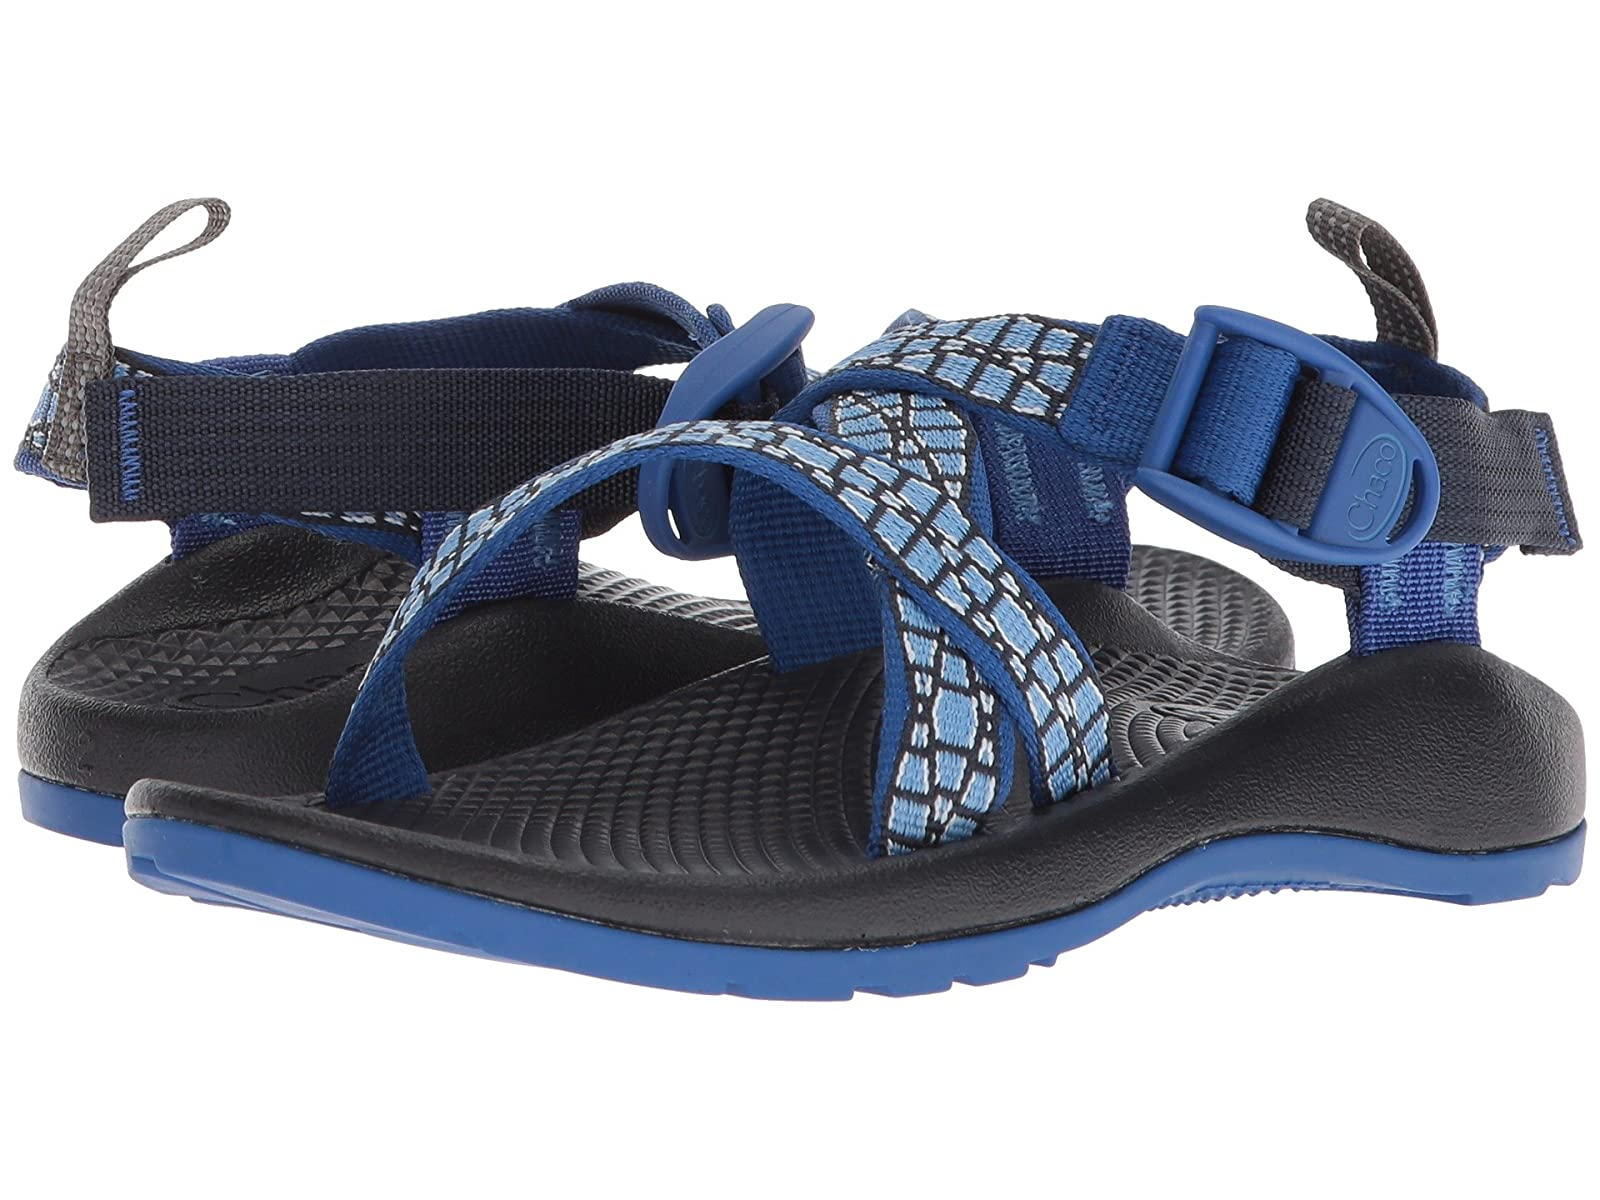 Chaco Kids Z/1 Ecotread (Toddler/Little Kid/Big Kid)Comfortable and distinctive shoes